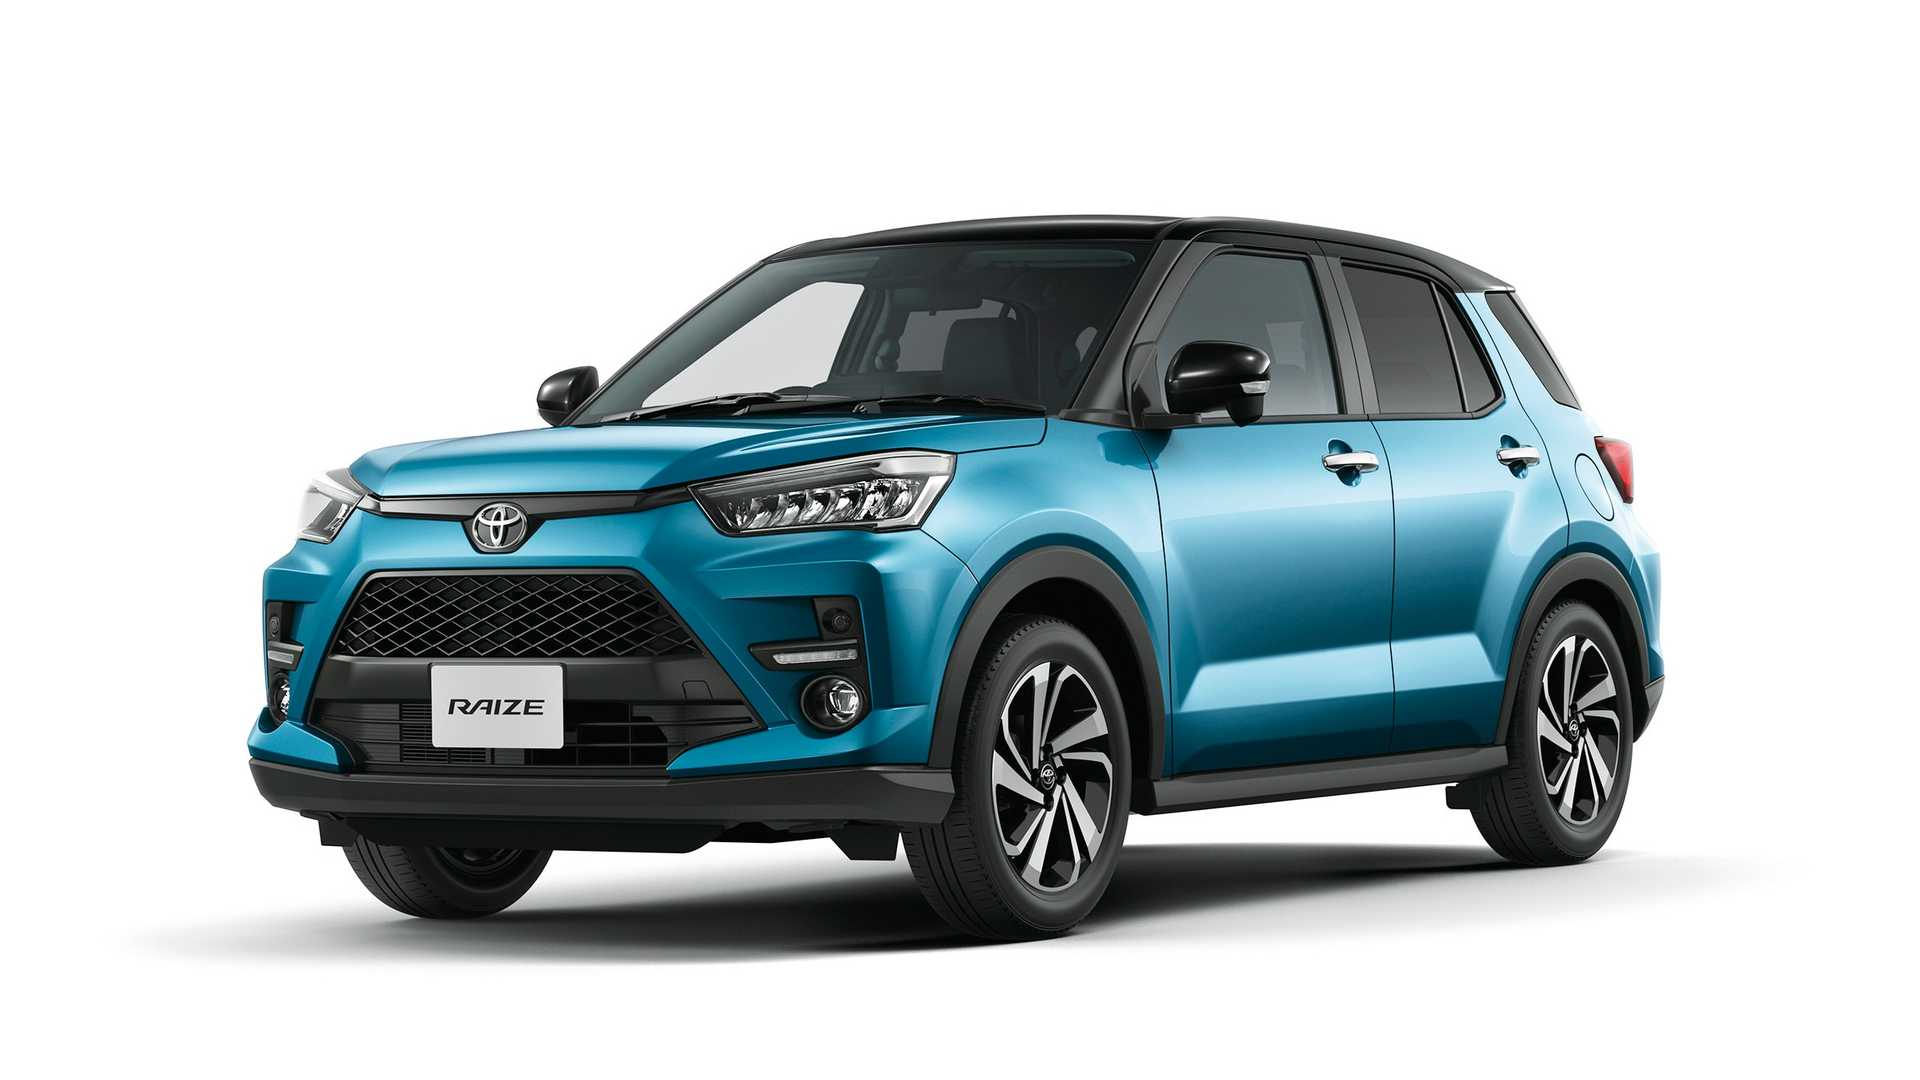 Toyota Raize Launches In Japan As Little Brother To RAV4